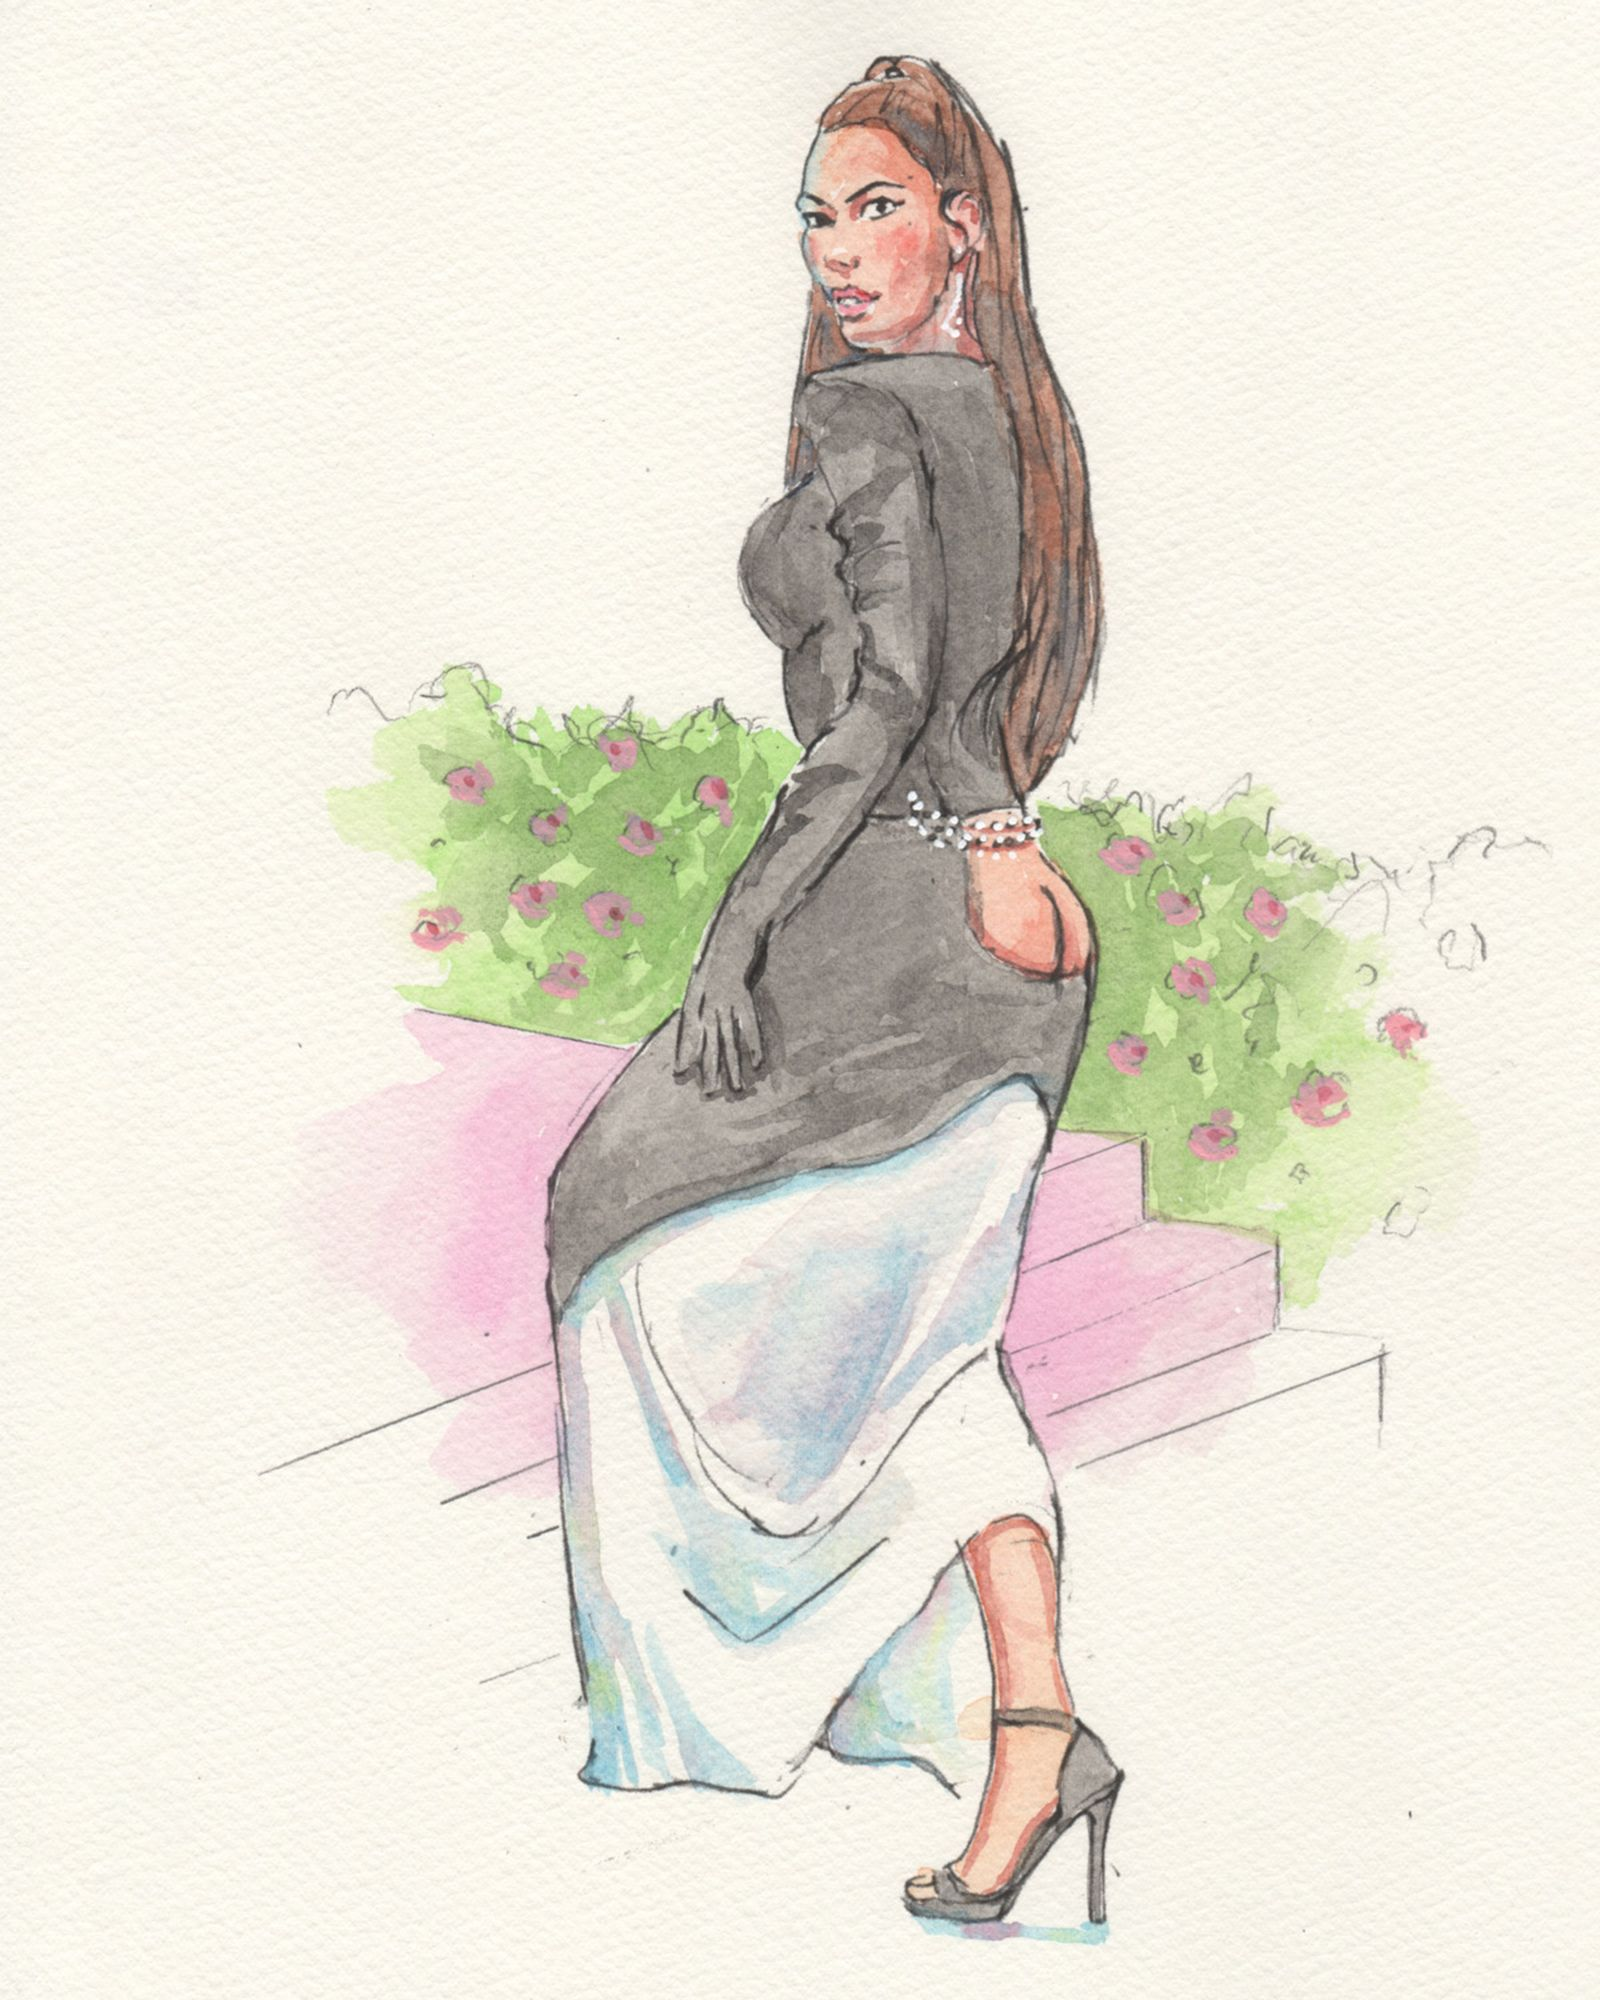 courtroom-sketch-artist-draws-fantasty-met-gala-fits-never-happened-Kim-Kardasian